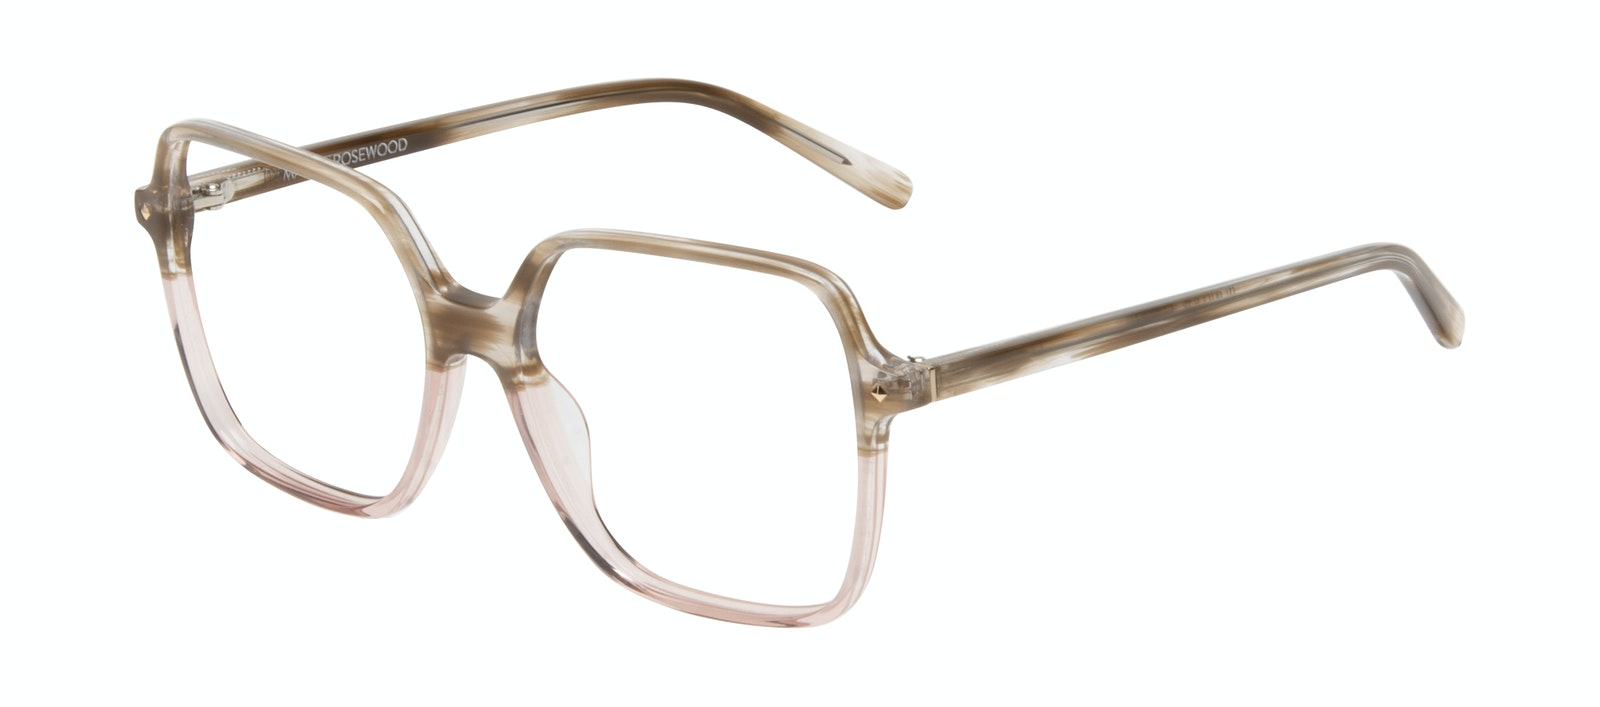 Affordable Fashion Glasses Square Eyeglasses Women Major Rosewood Tilt